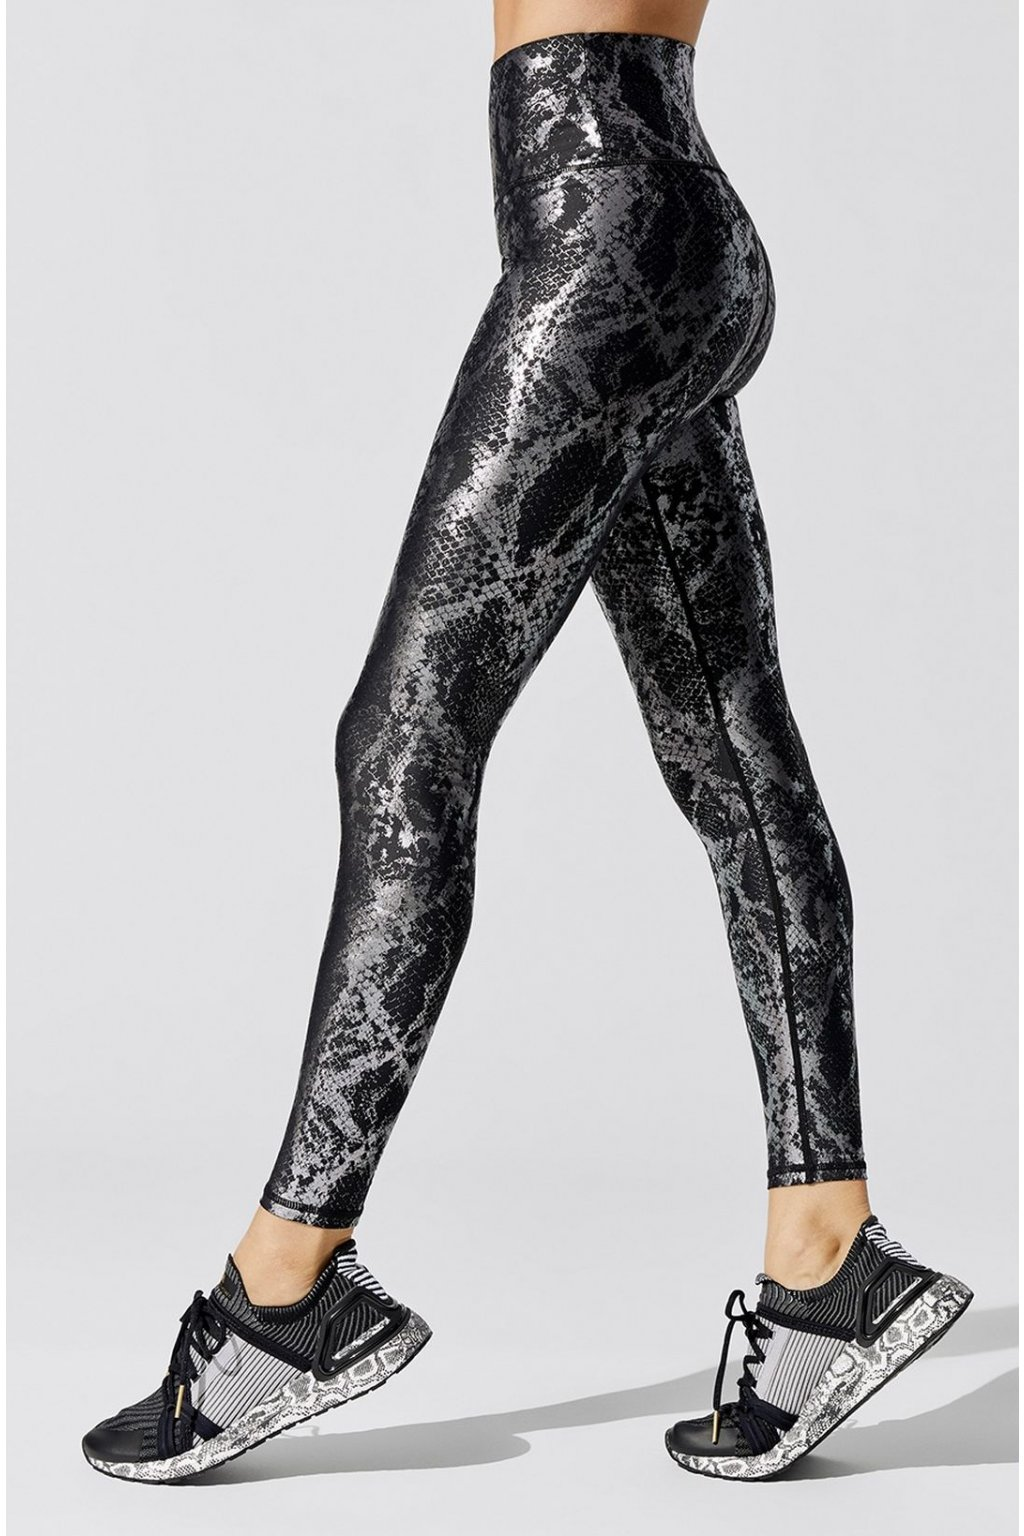 carb crb19331d snablk carbon38 snake print legging bottoms black 0016